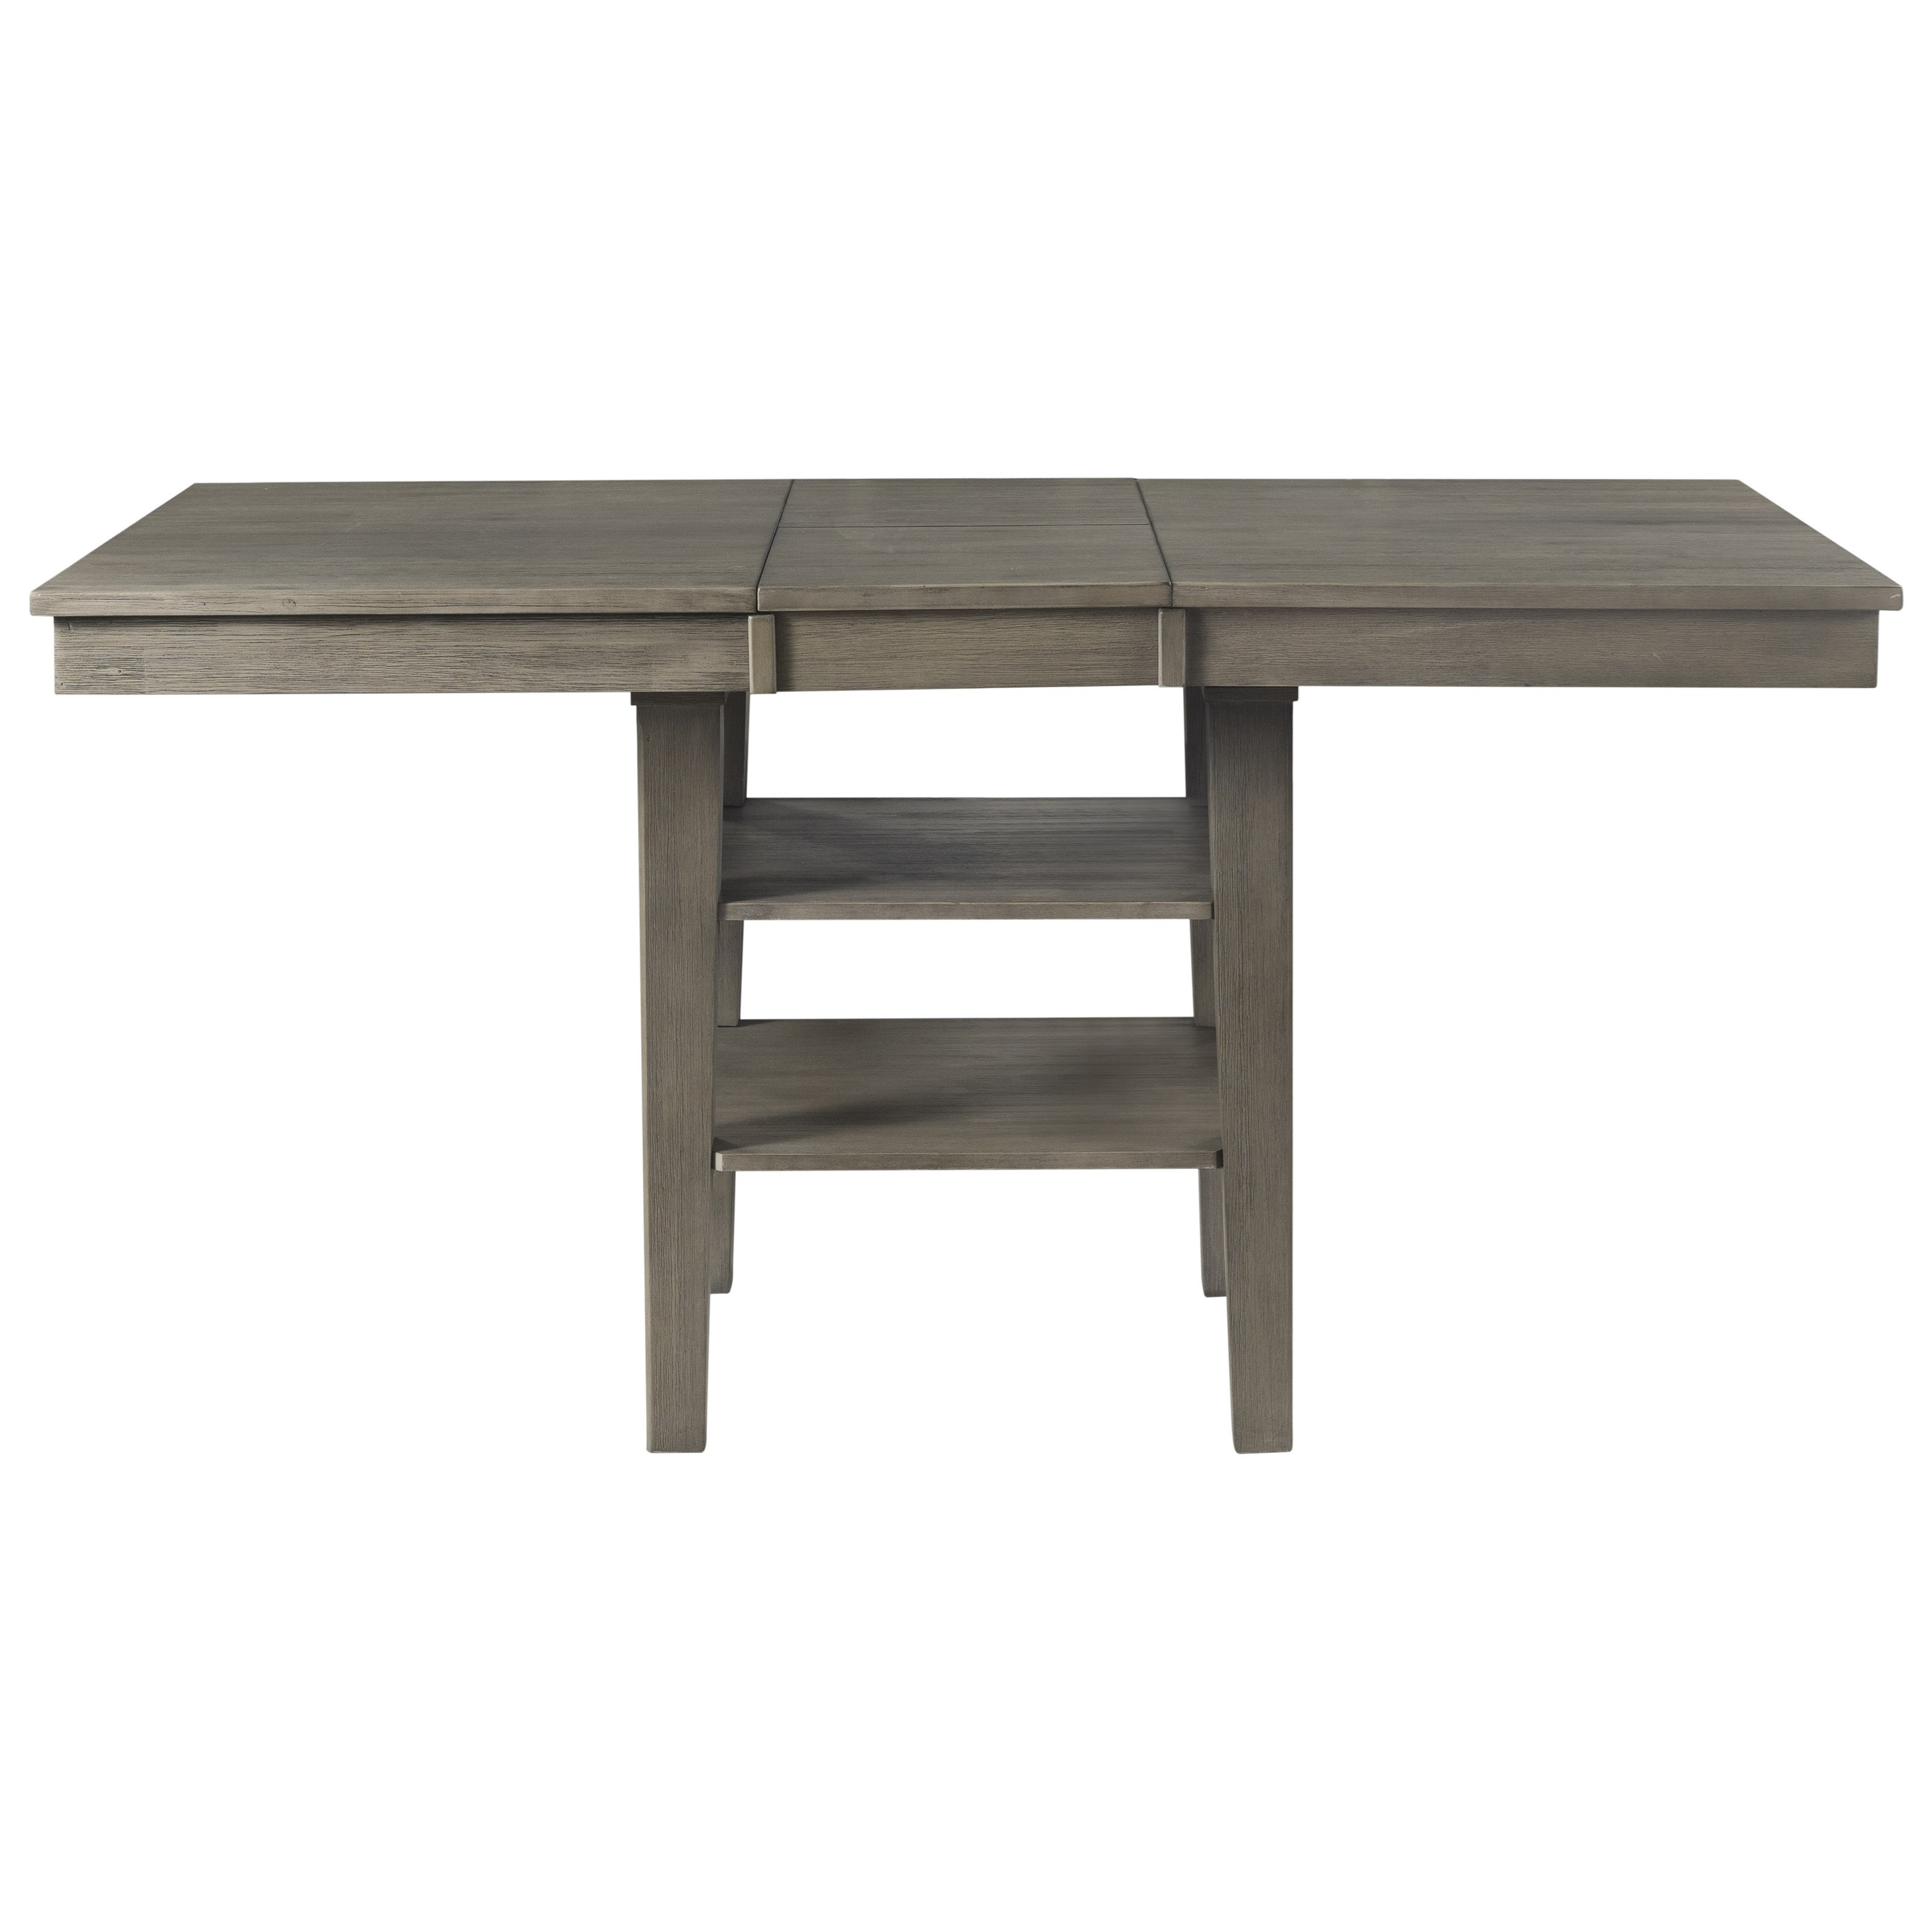 Huron Rectangular Counter Height Pedestal Table by A-A at Walker's Furniture